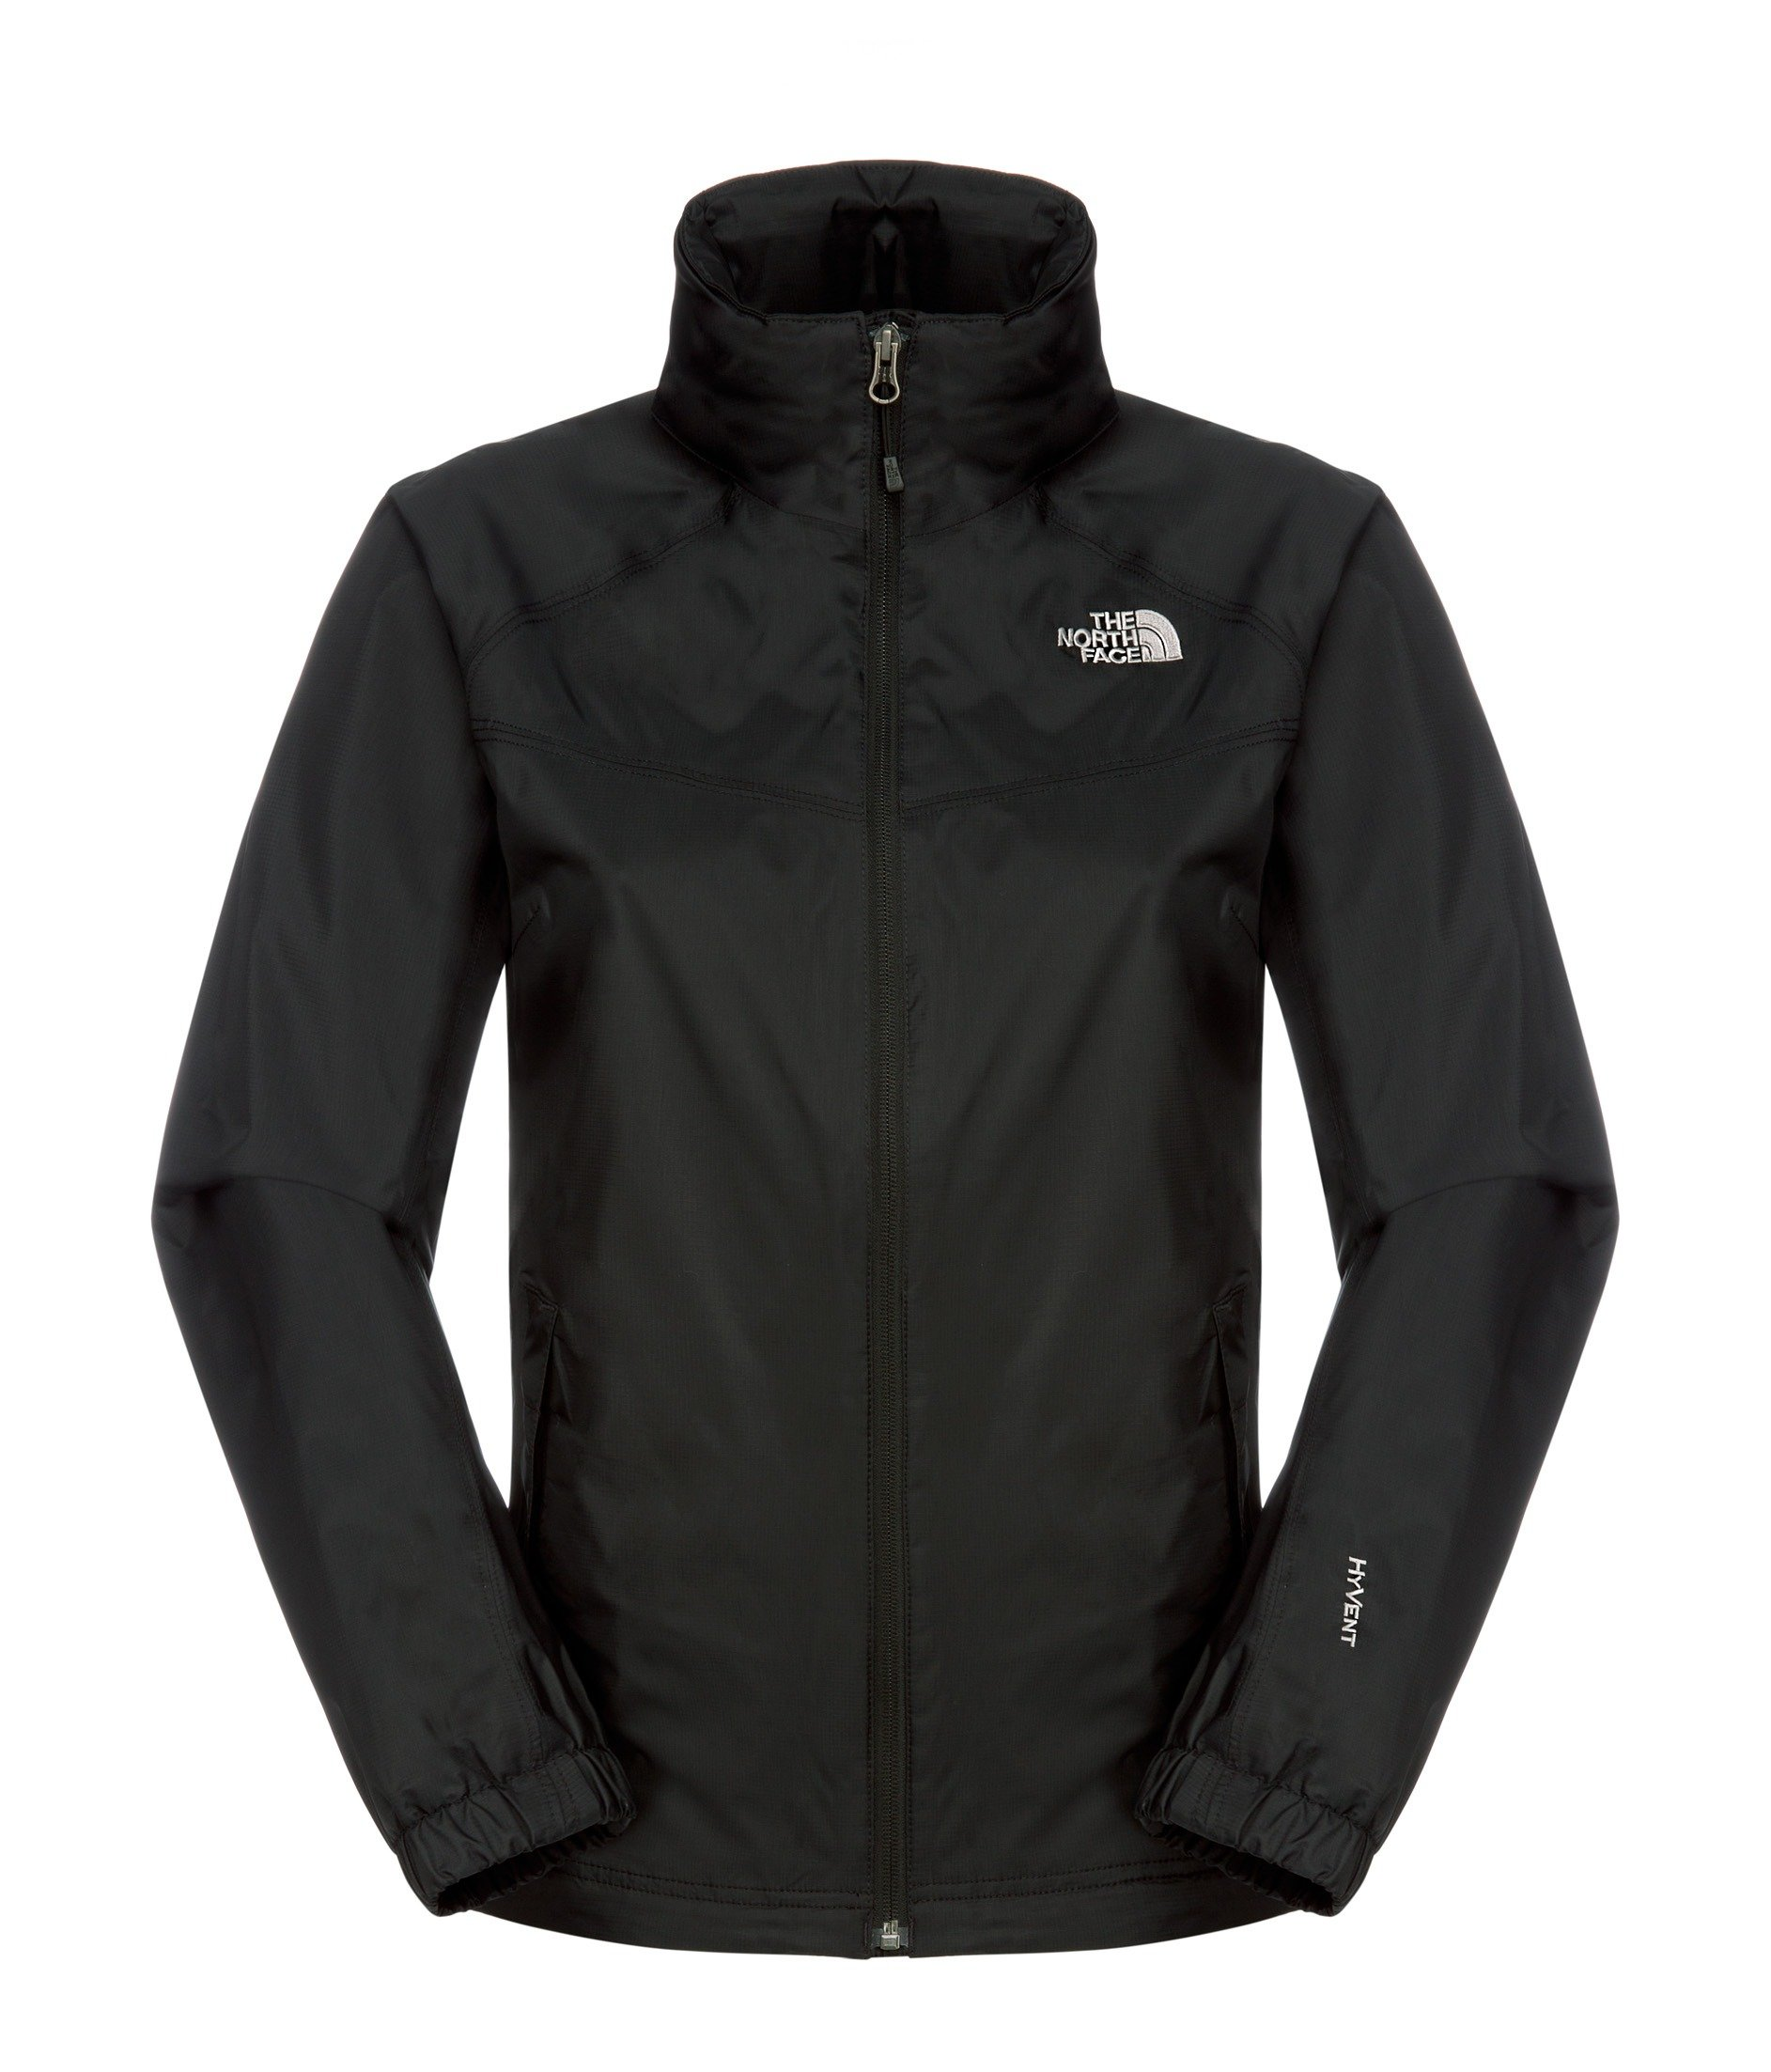 North face potent jacket woman fra The north face fra billigsport24